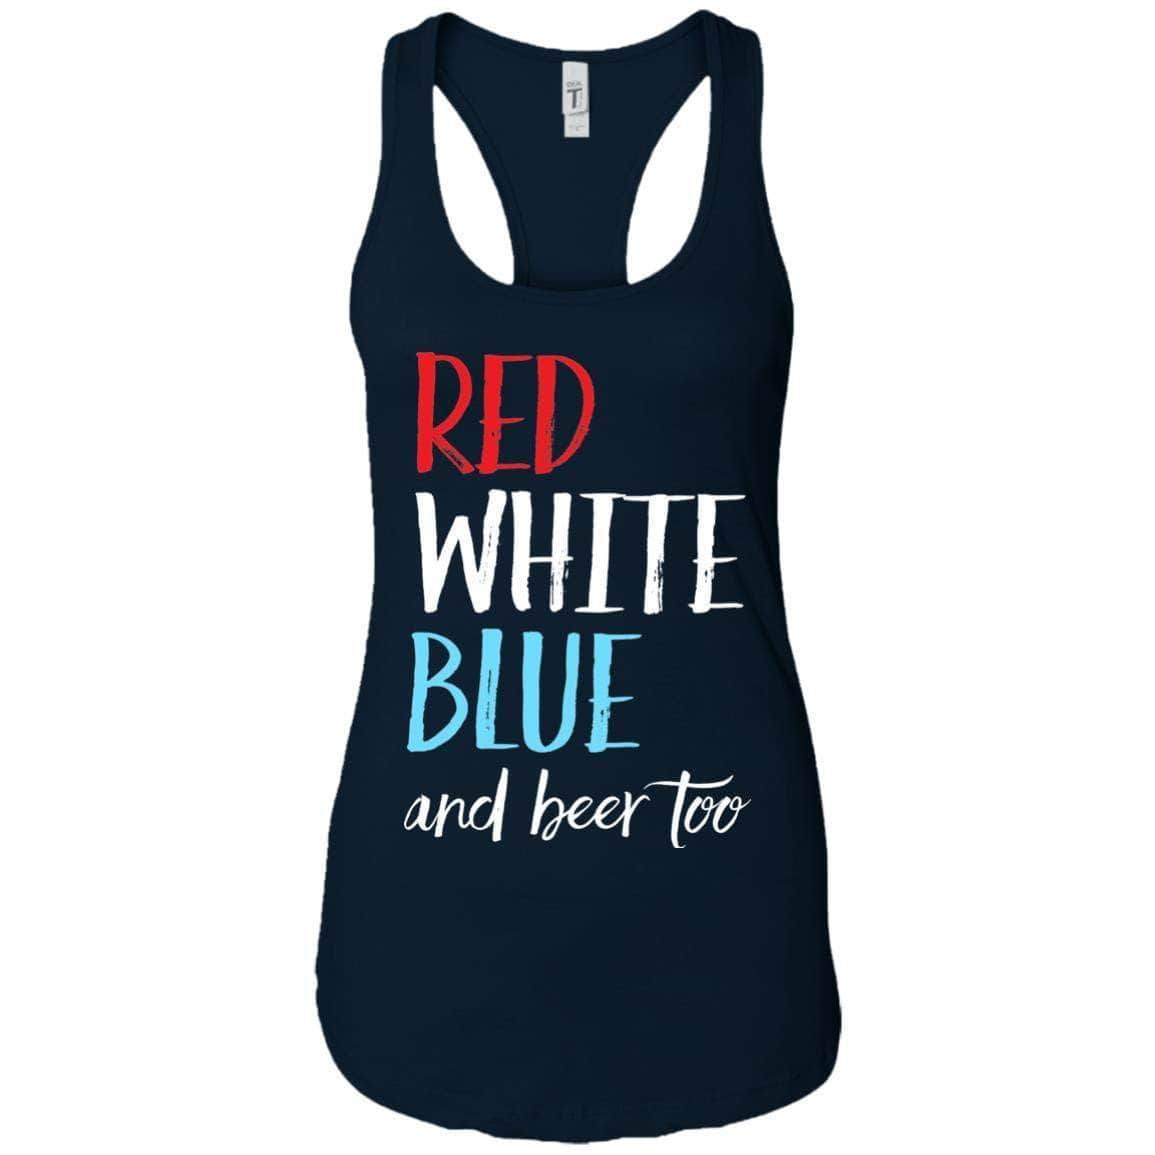 a01c92e1136f4 Funny 4th of July Shirts for Men and Women